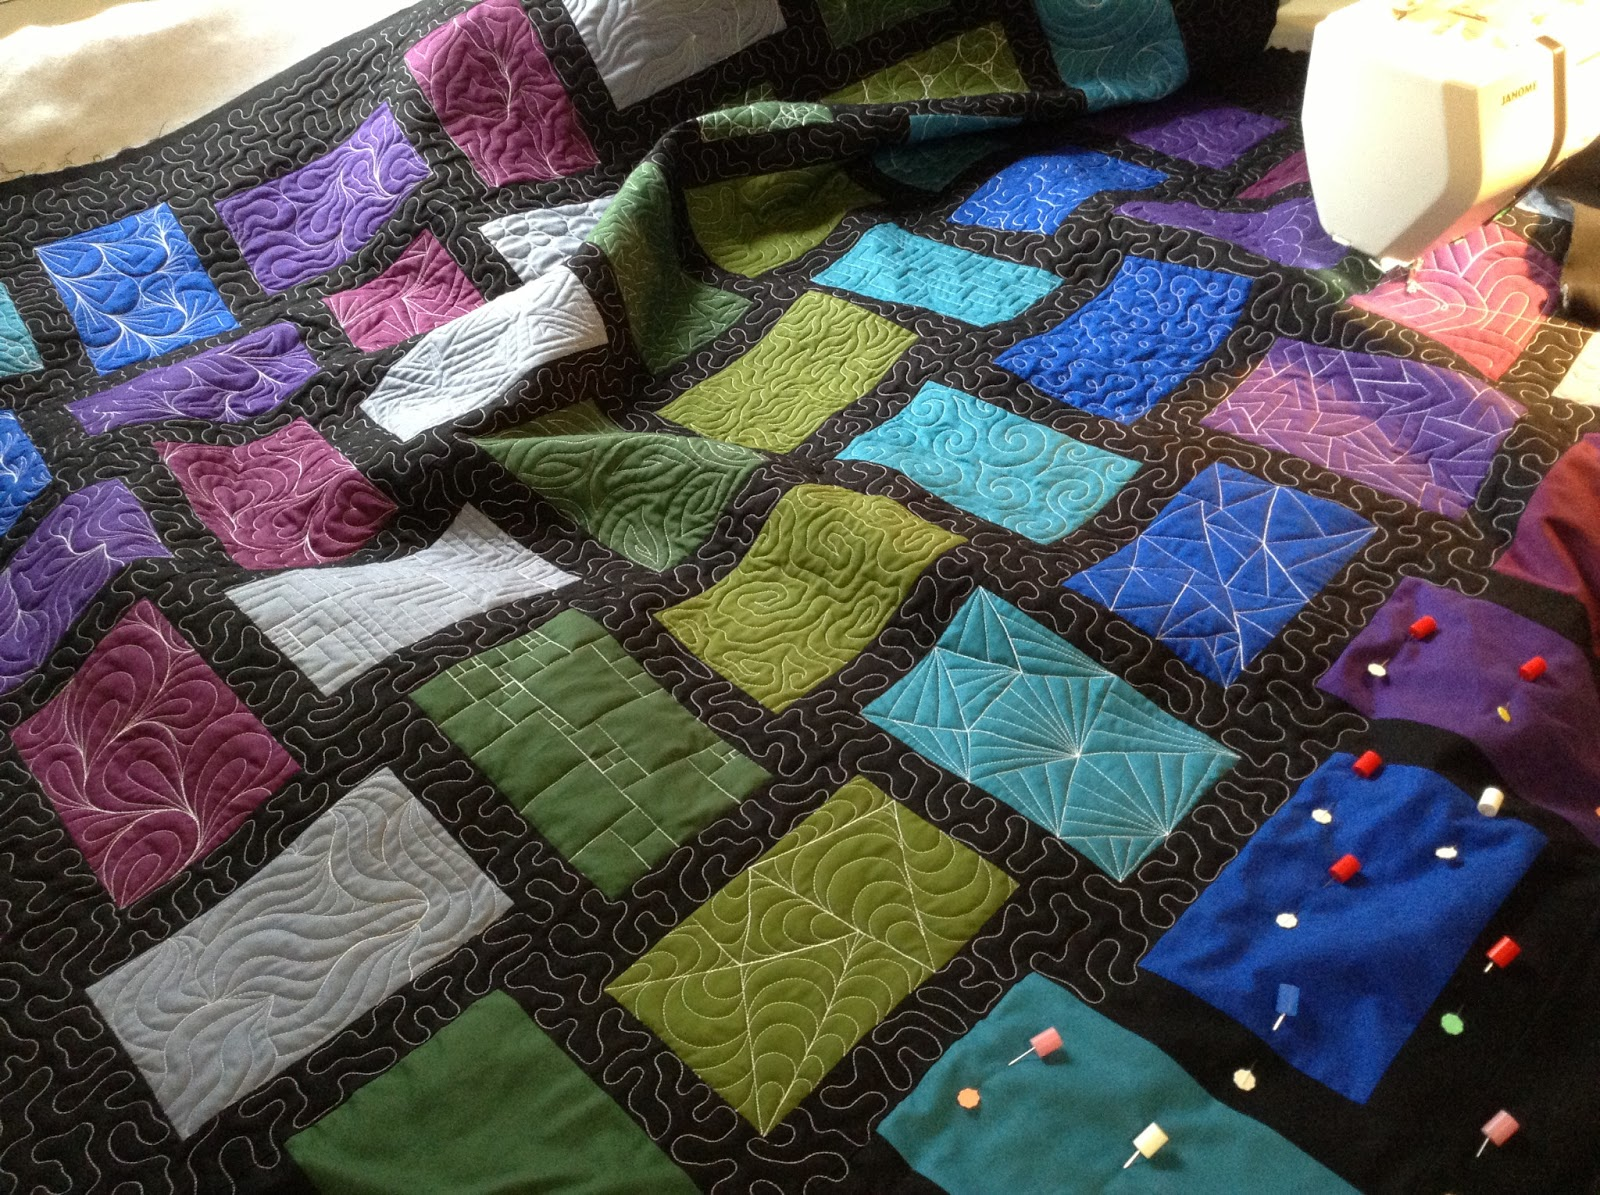 Free Motion Quilting Patterns For Blocks : The Free Motion Quilting Project: Take a Class